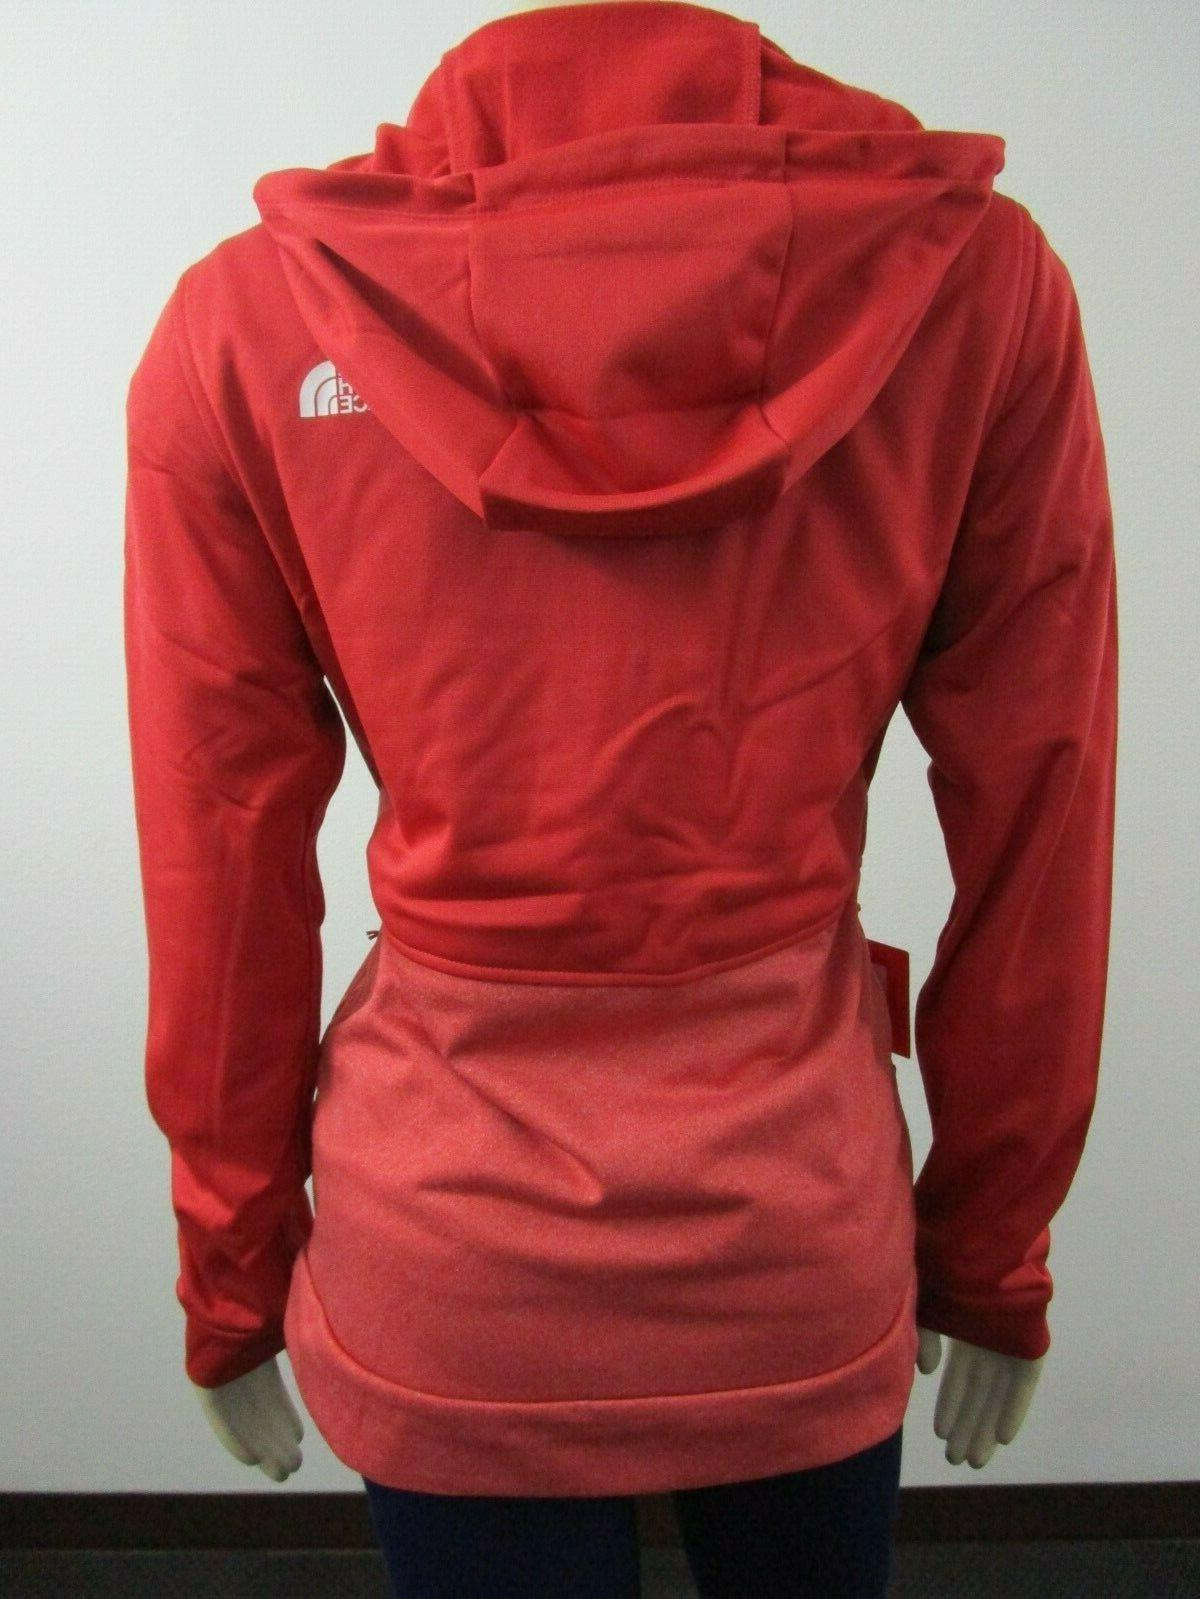 NWT Womens Face TNF 100 Tenacious - Red